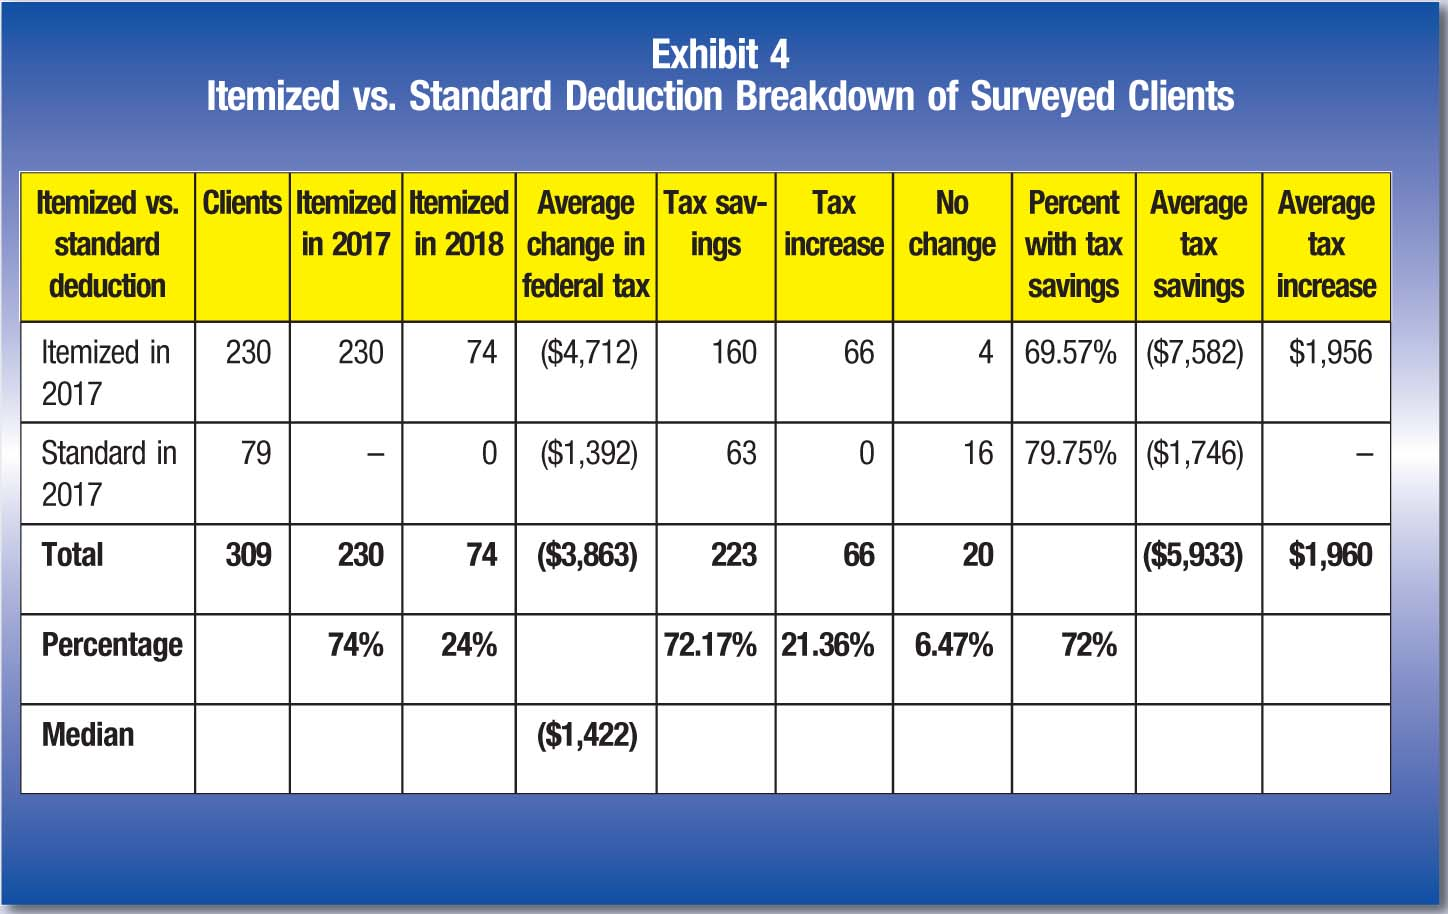 Itemized vs. standard deduction; Clients; Itemized in 2017; Itemized in 2018; Average change in federal tax; Tax savings; Tax increase; No change; Percent with tax savings; Average tax savings; Average tax increase Itemized in 2017; 230; 230; 74; ($4,712); 160; 66; 4; 69.57%; ($7,582); $1,956 Standard in 2017; 79; –; 0; ($1,392); 63; 0; 16; 79.75%;;($1,746); – Total; 309; 230; 74; ($3,863); 223; 66; 20; ($5,933); $1,960 Percentage; 74%; 24%; 72.17%; 21.36%; 6.47%; 72% Median; ($1,422)